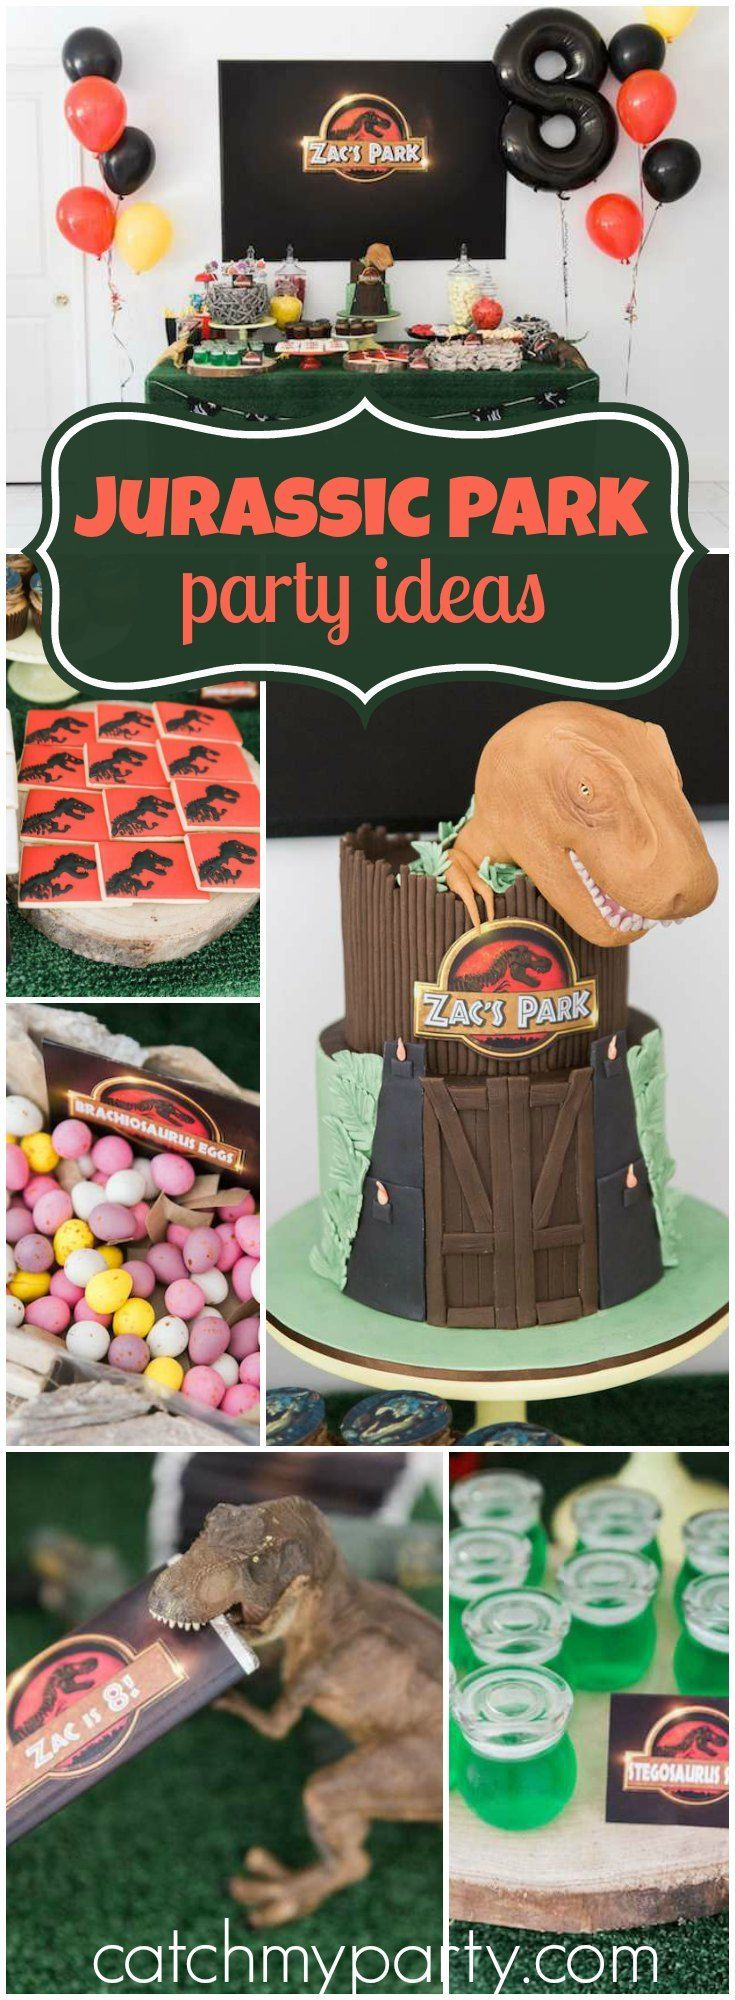 This Jurassic Park party includes a T-Rex piñata and a movie night! See more party ideas at Catchmyparty.com!